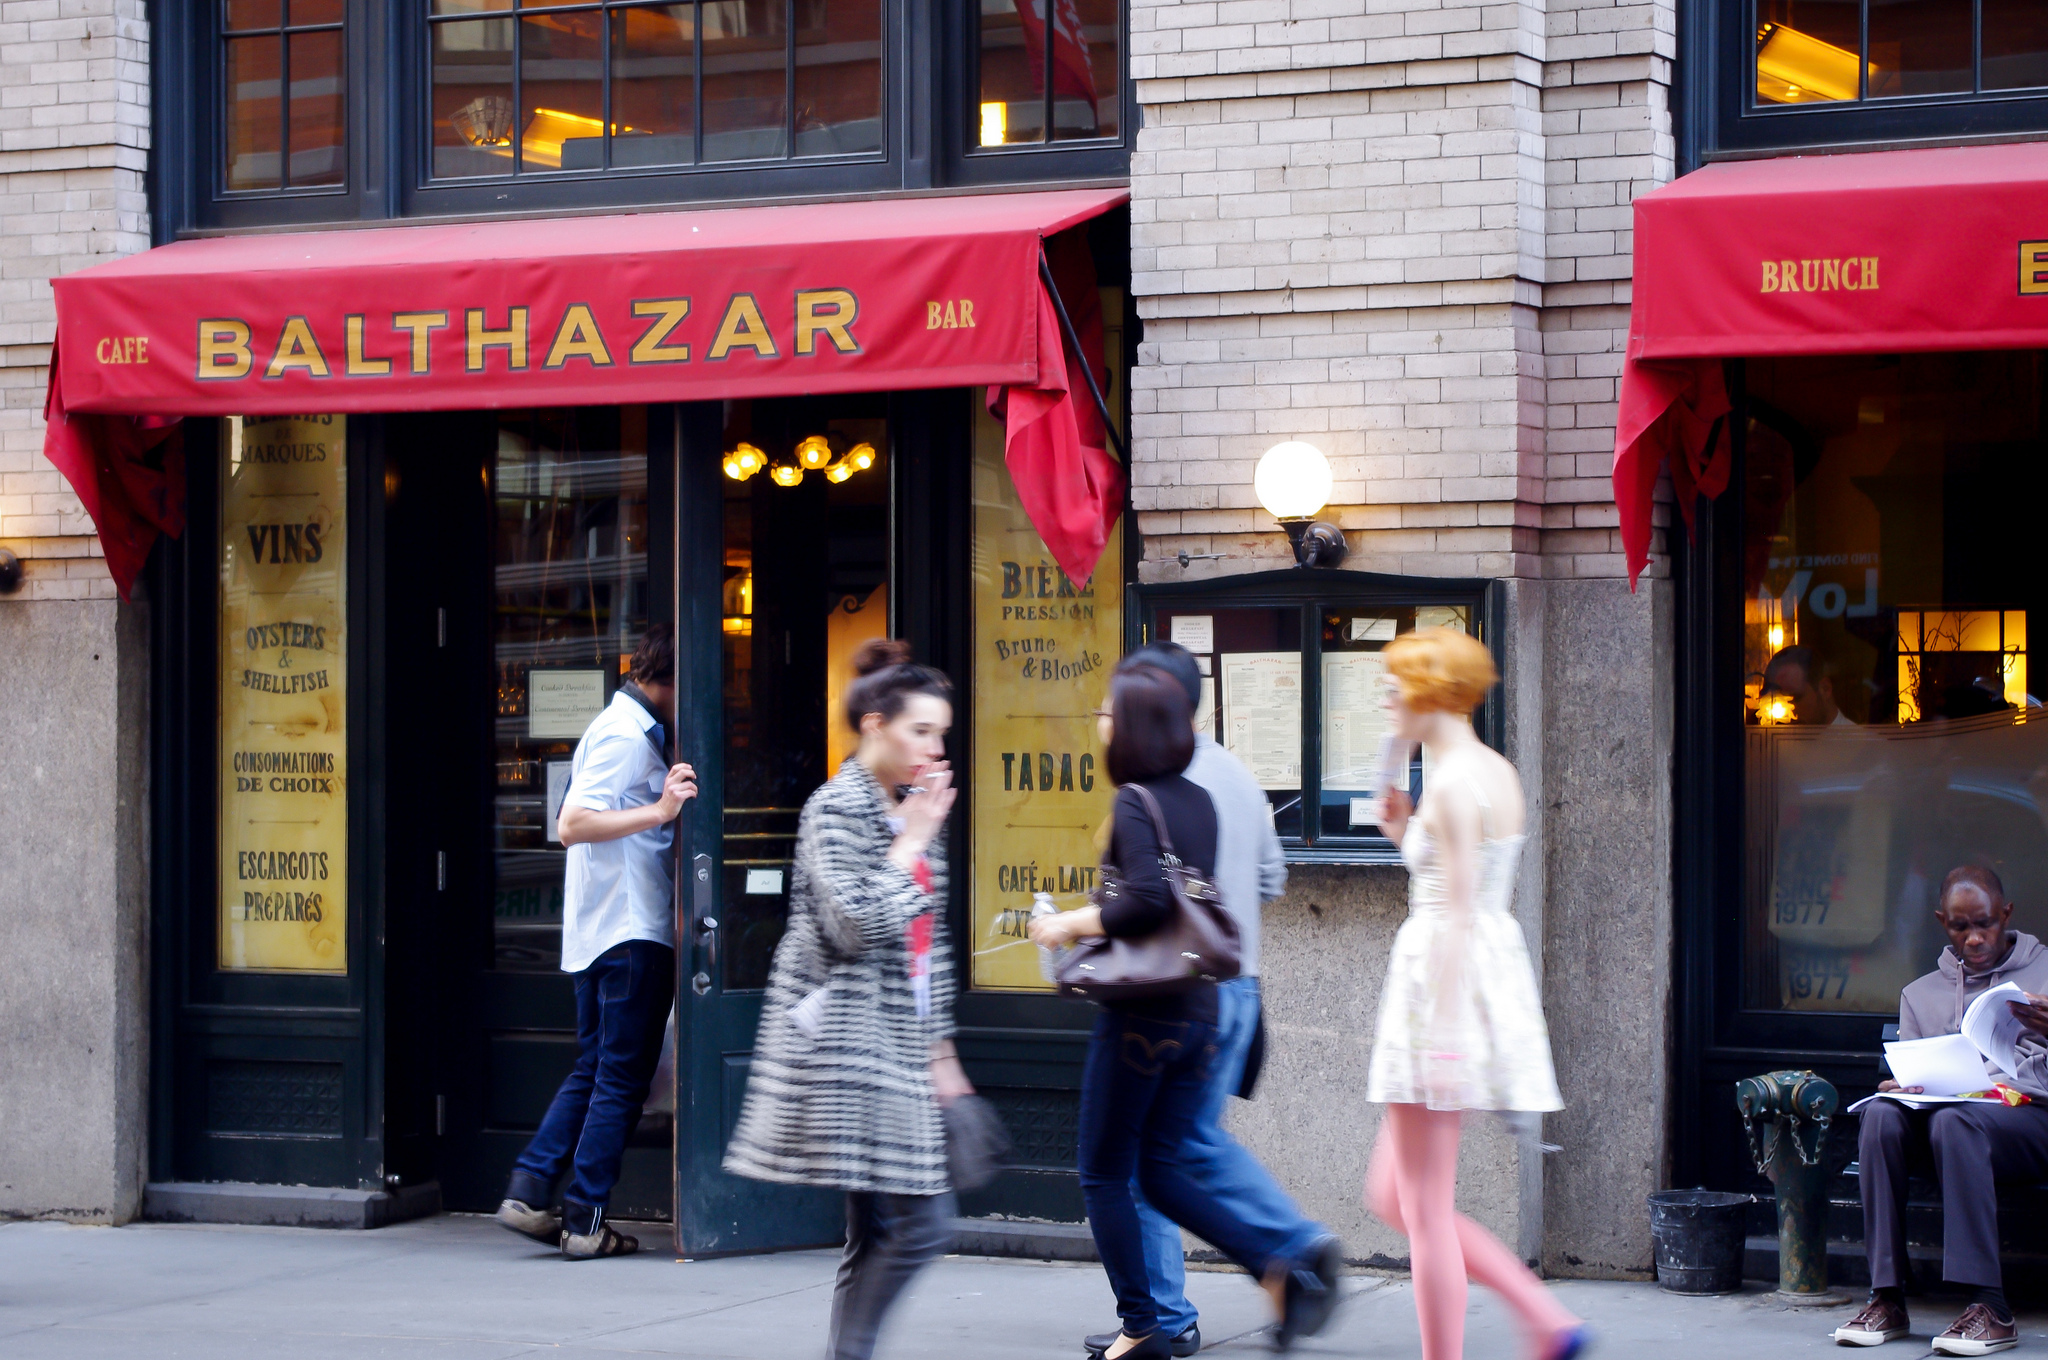 Cafe Balthazar in New York. Photo by alphacityguides.